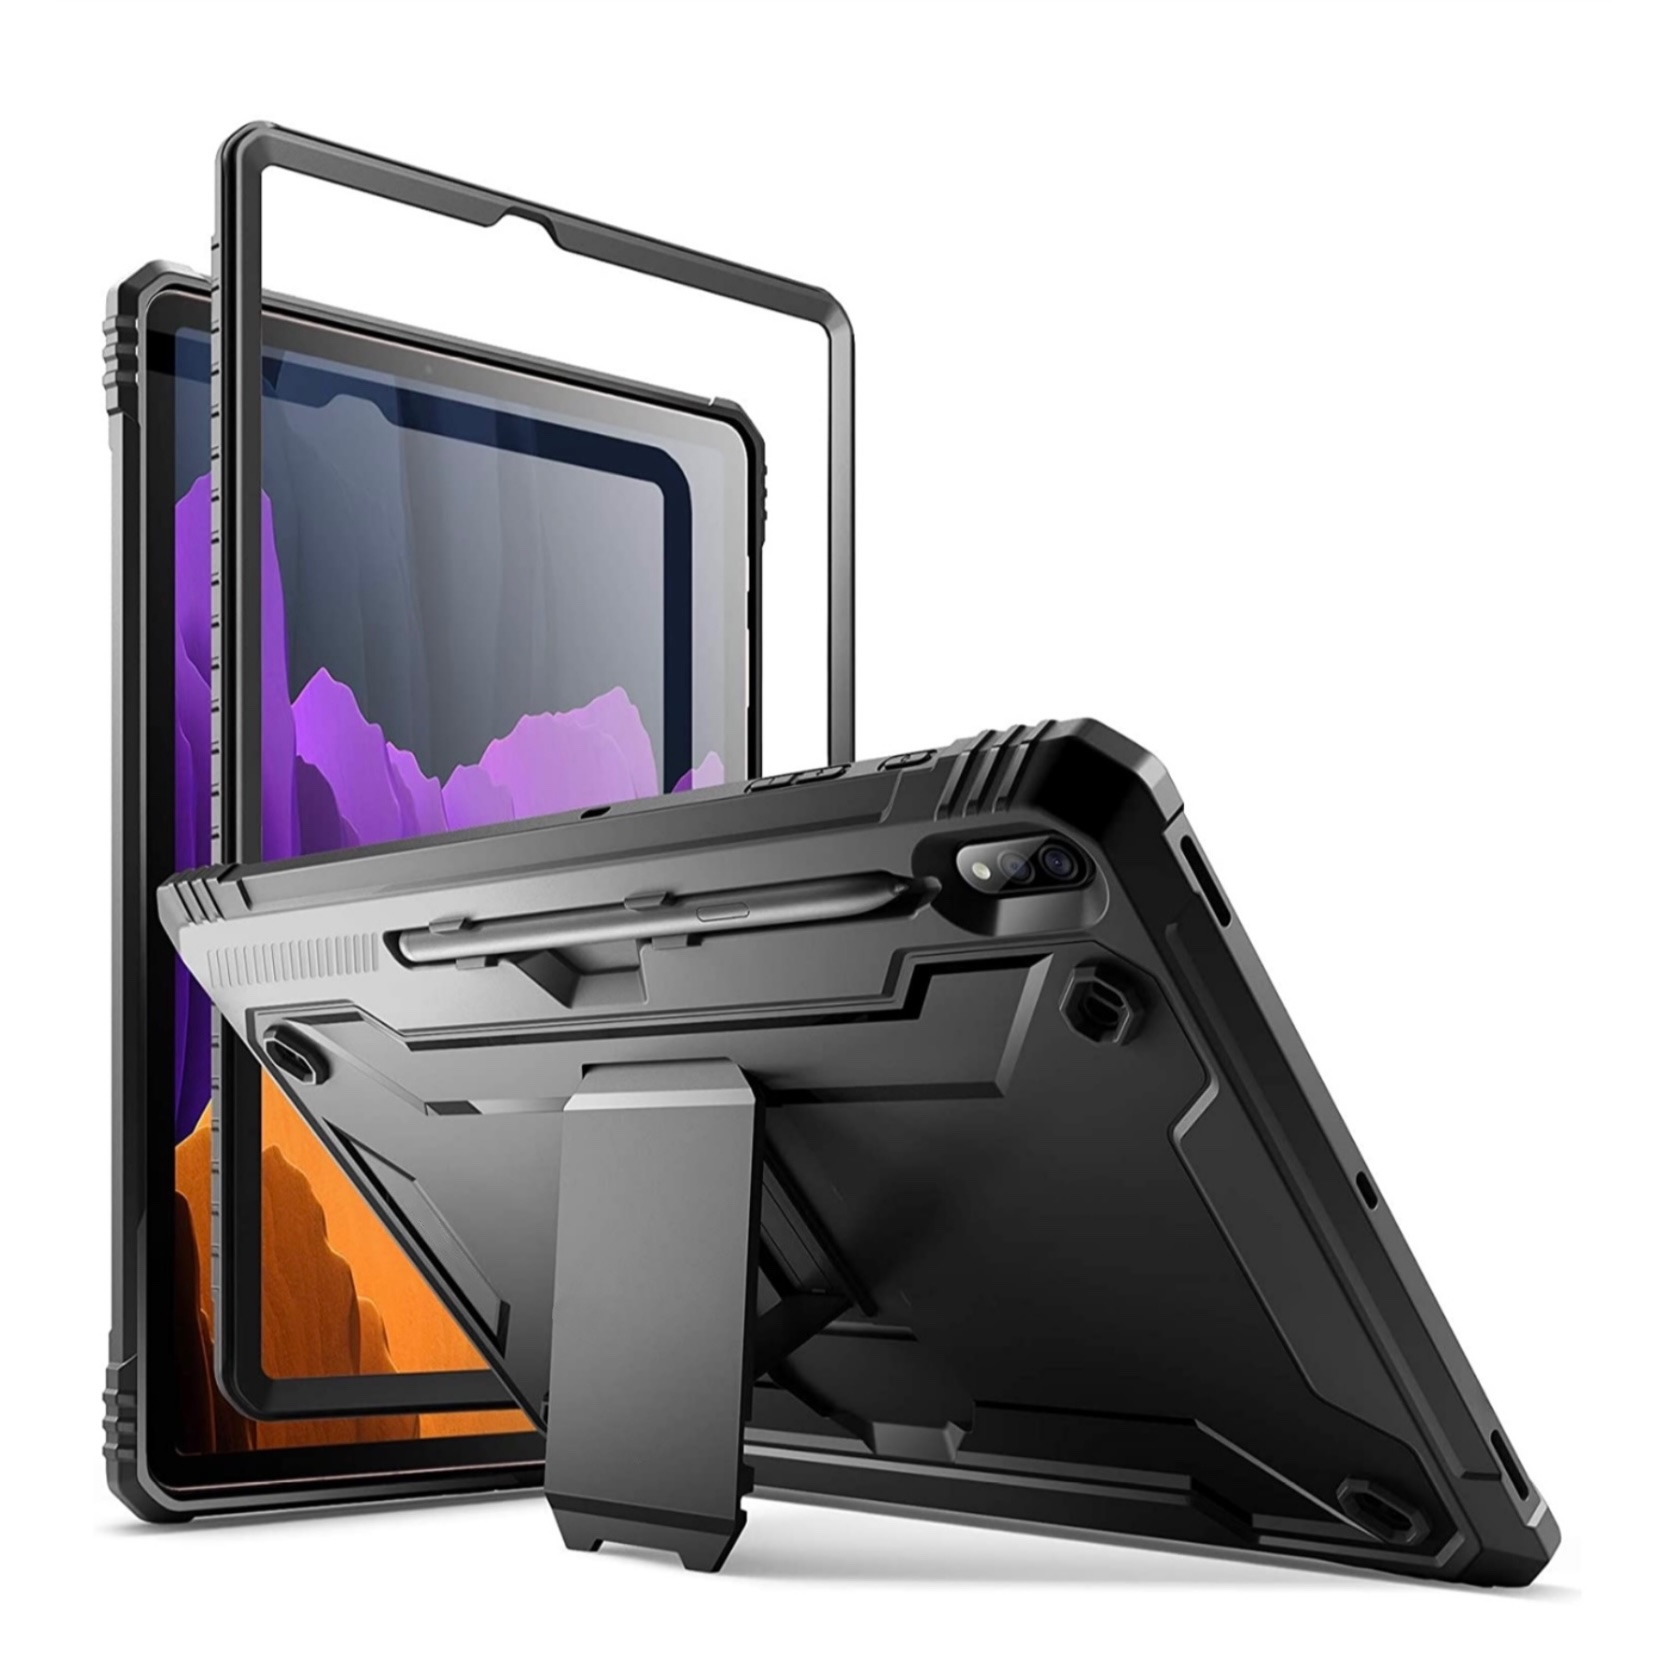 Samsung Galaxy TAB S7 11p Coque Protection et support stylet